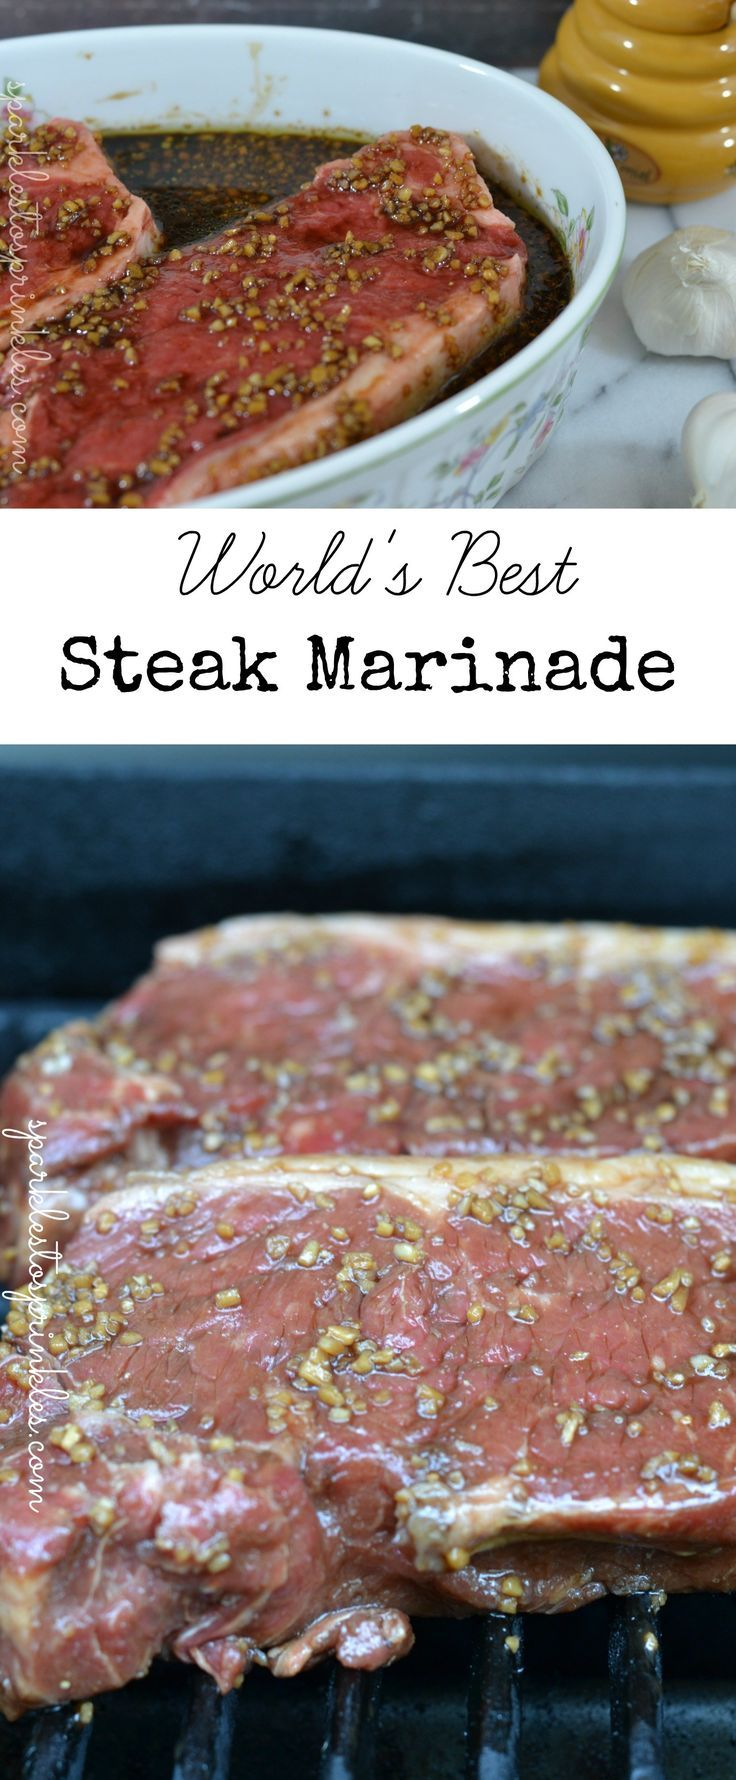 Worlds Best Steak Marinade!